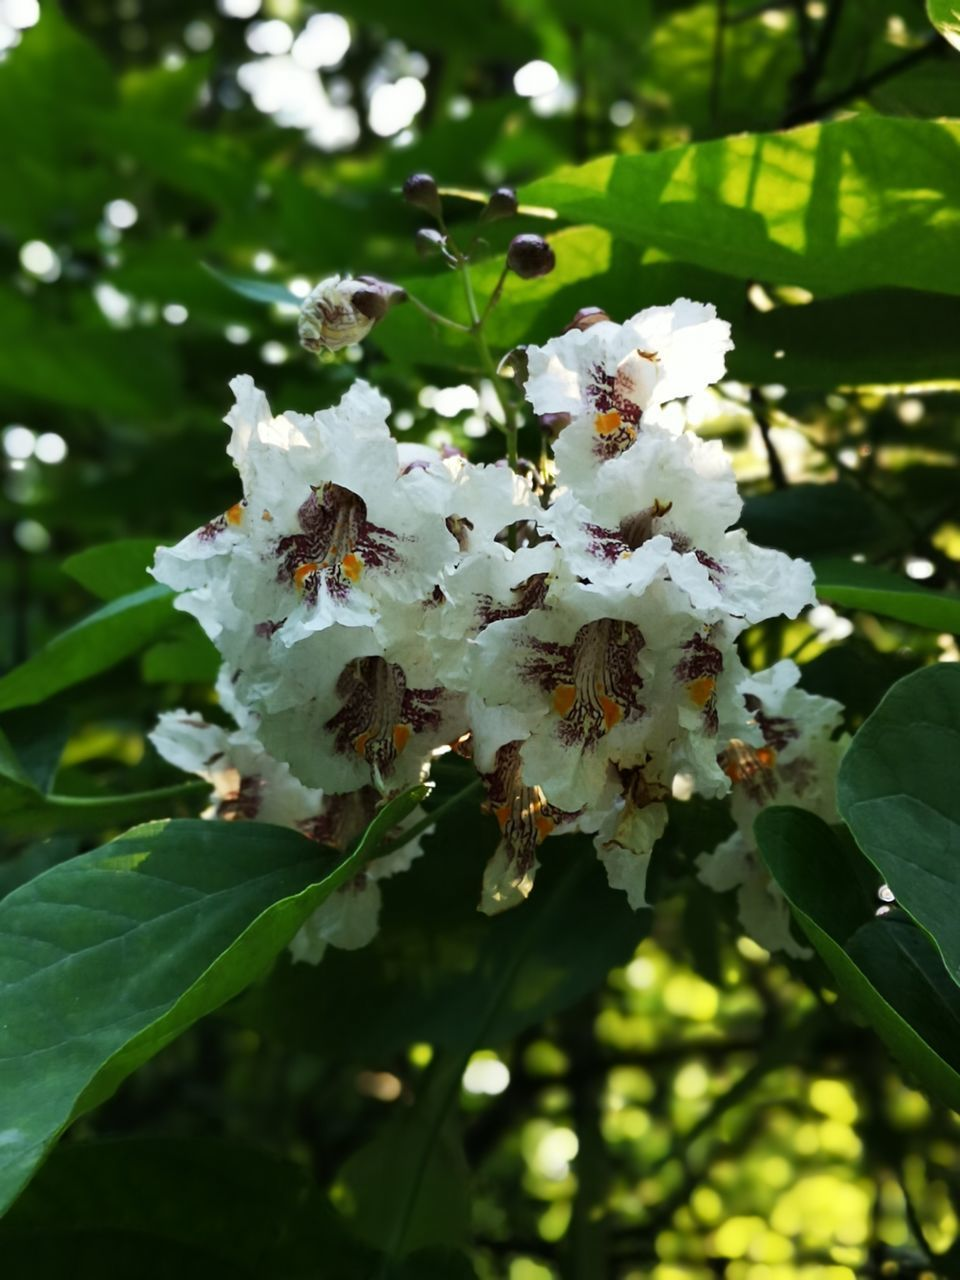 CLOSE-UP OF WHITE FLOWERING PLANT WITH FRESH FLOWERS